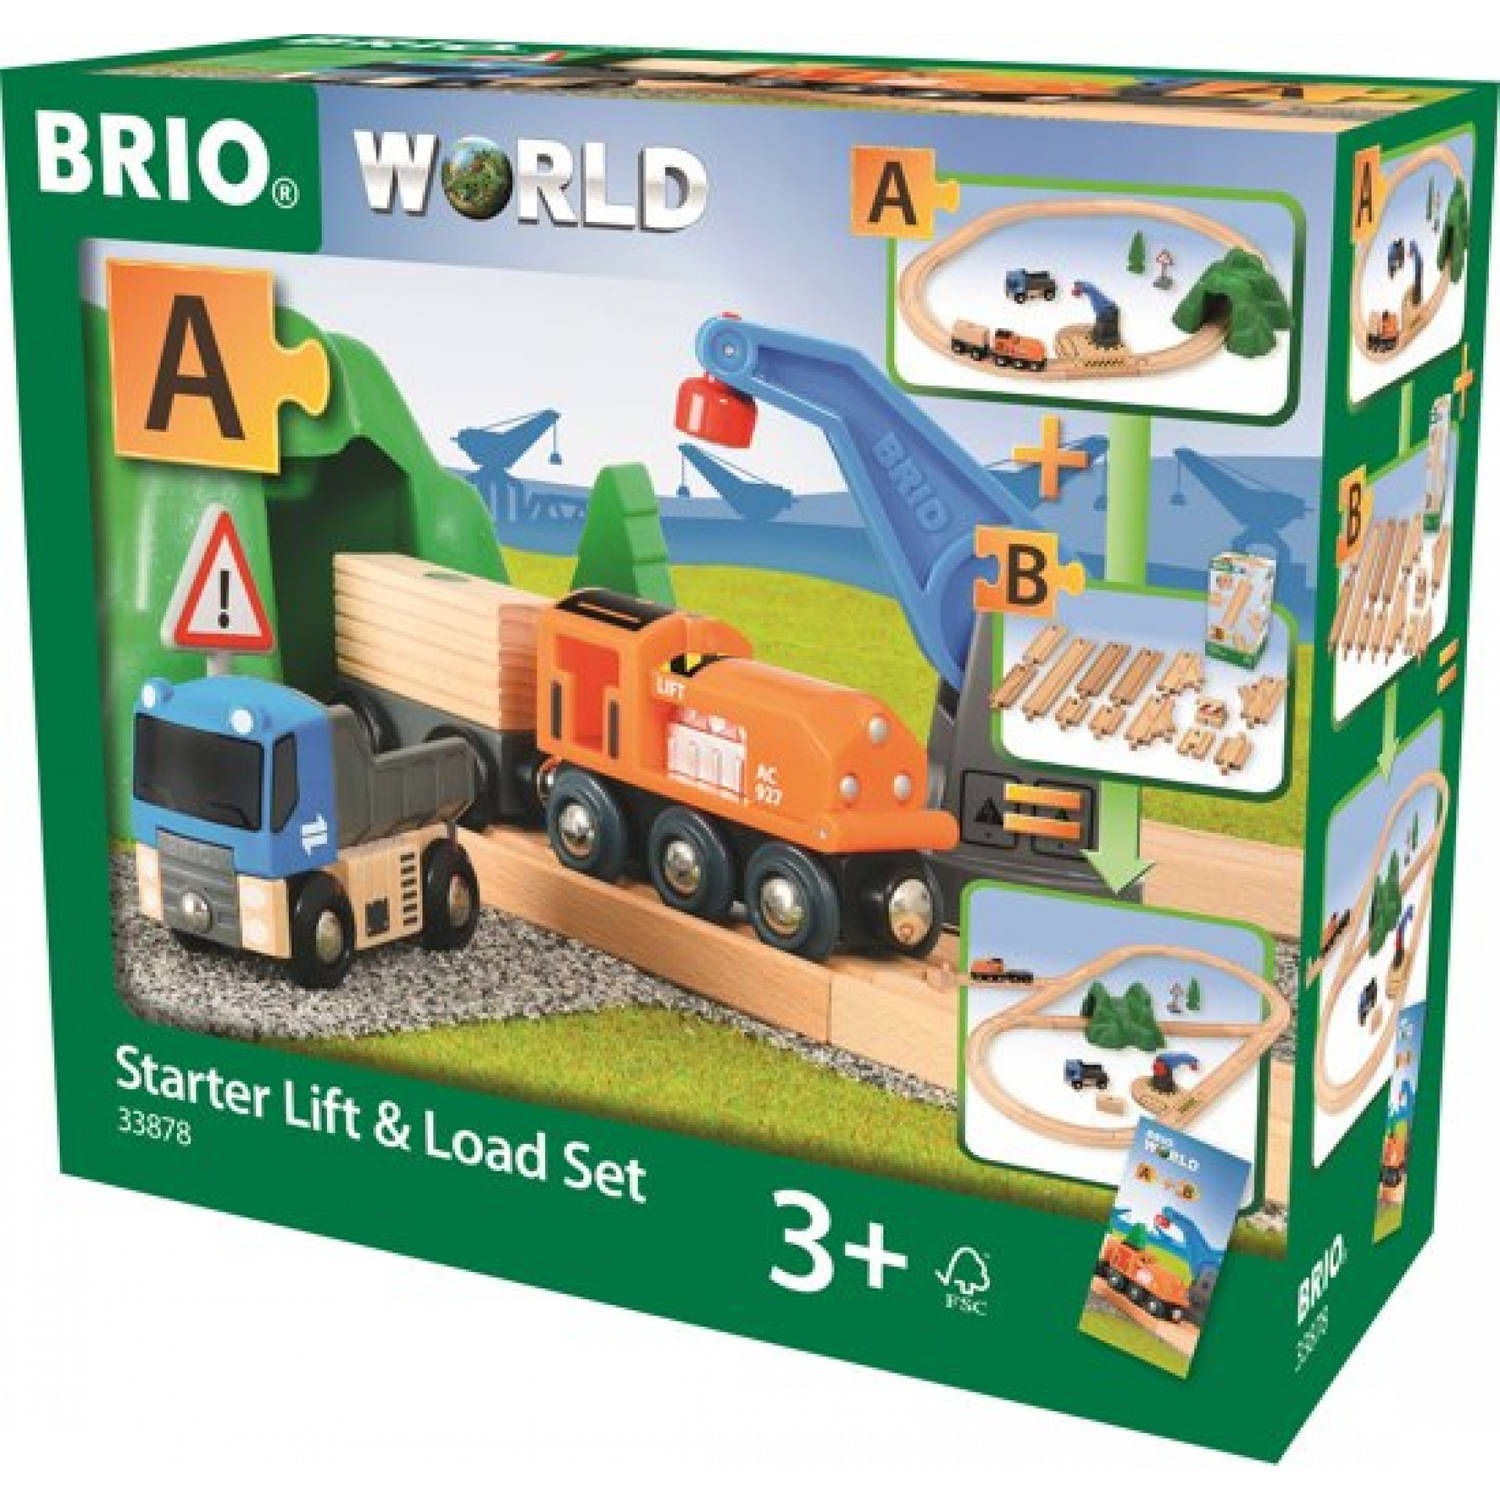 BRIO Starter Lift Load Set A 33878